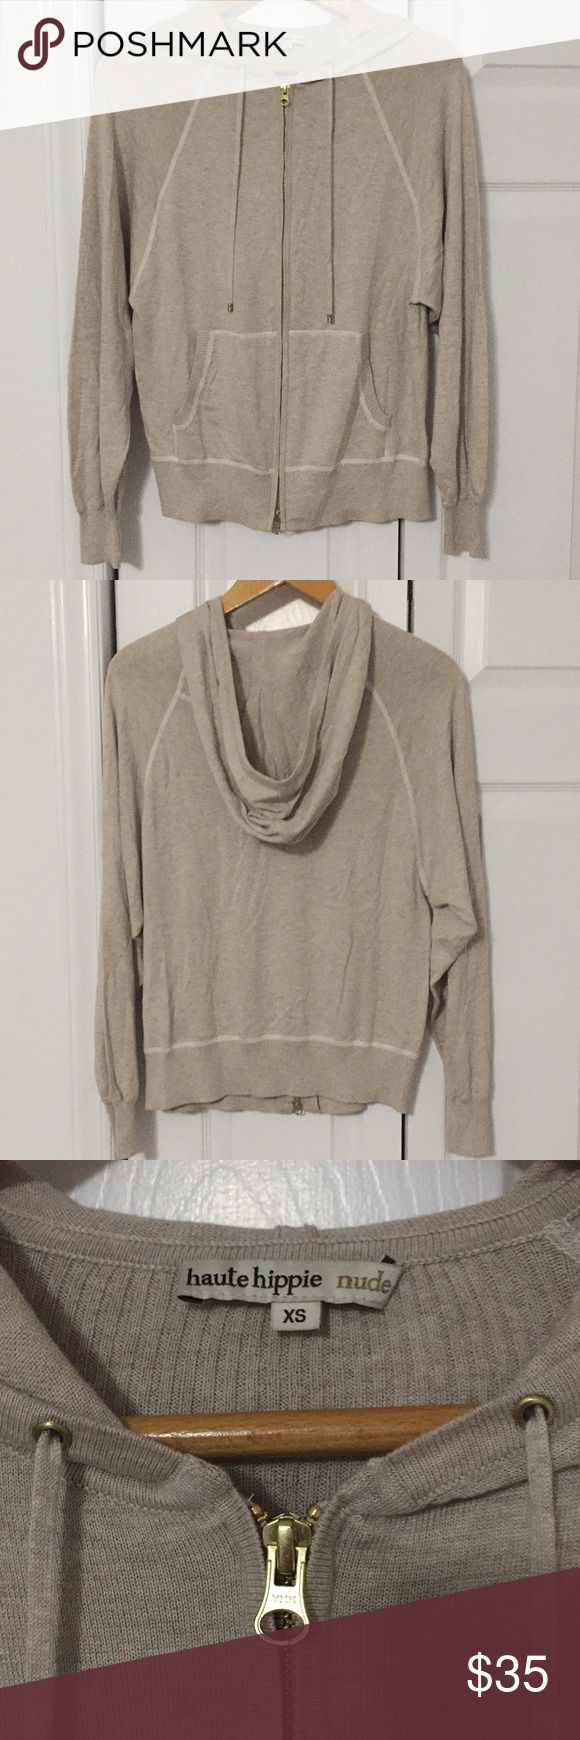 Haute Hippie nude soft zip hoodie Silk,cotton and cashmere blend fabric make this hoodie super soft. Lightweight and great for layering, this neutral piece can be mixed and matched with many other wardrobes essentials. Size extra small with two zipper pulls and pockets. Hood has drawstring. Please let me know if you have any questions and thank you for looking! Haute Hippie Sweaters